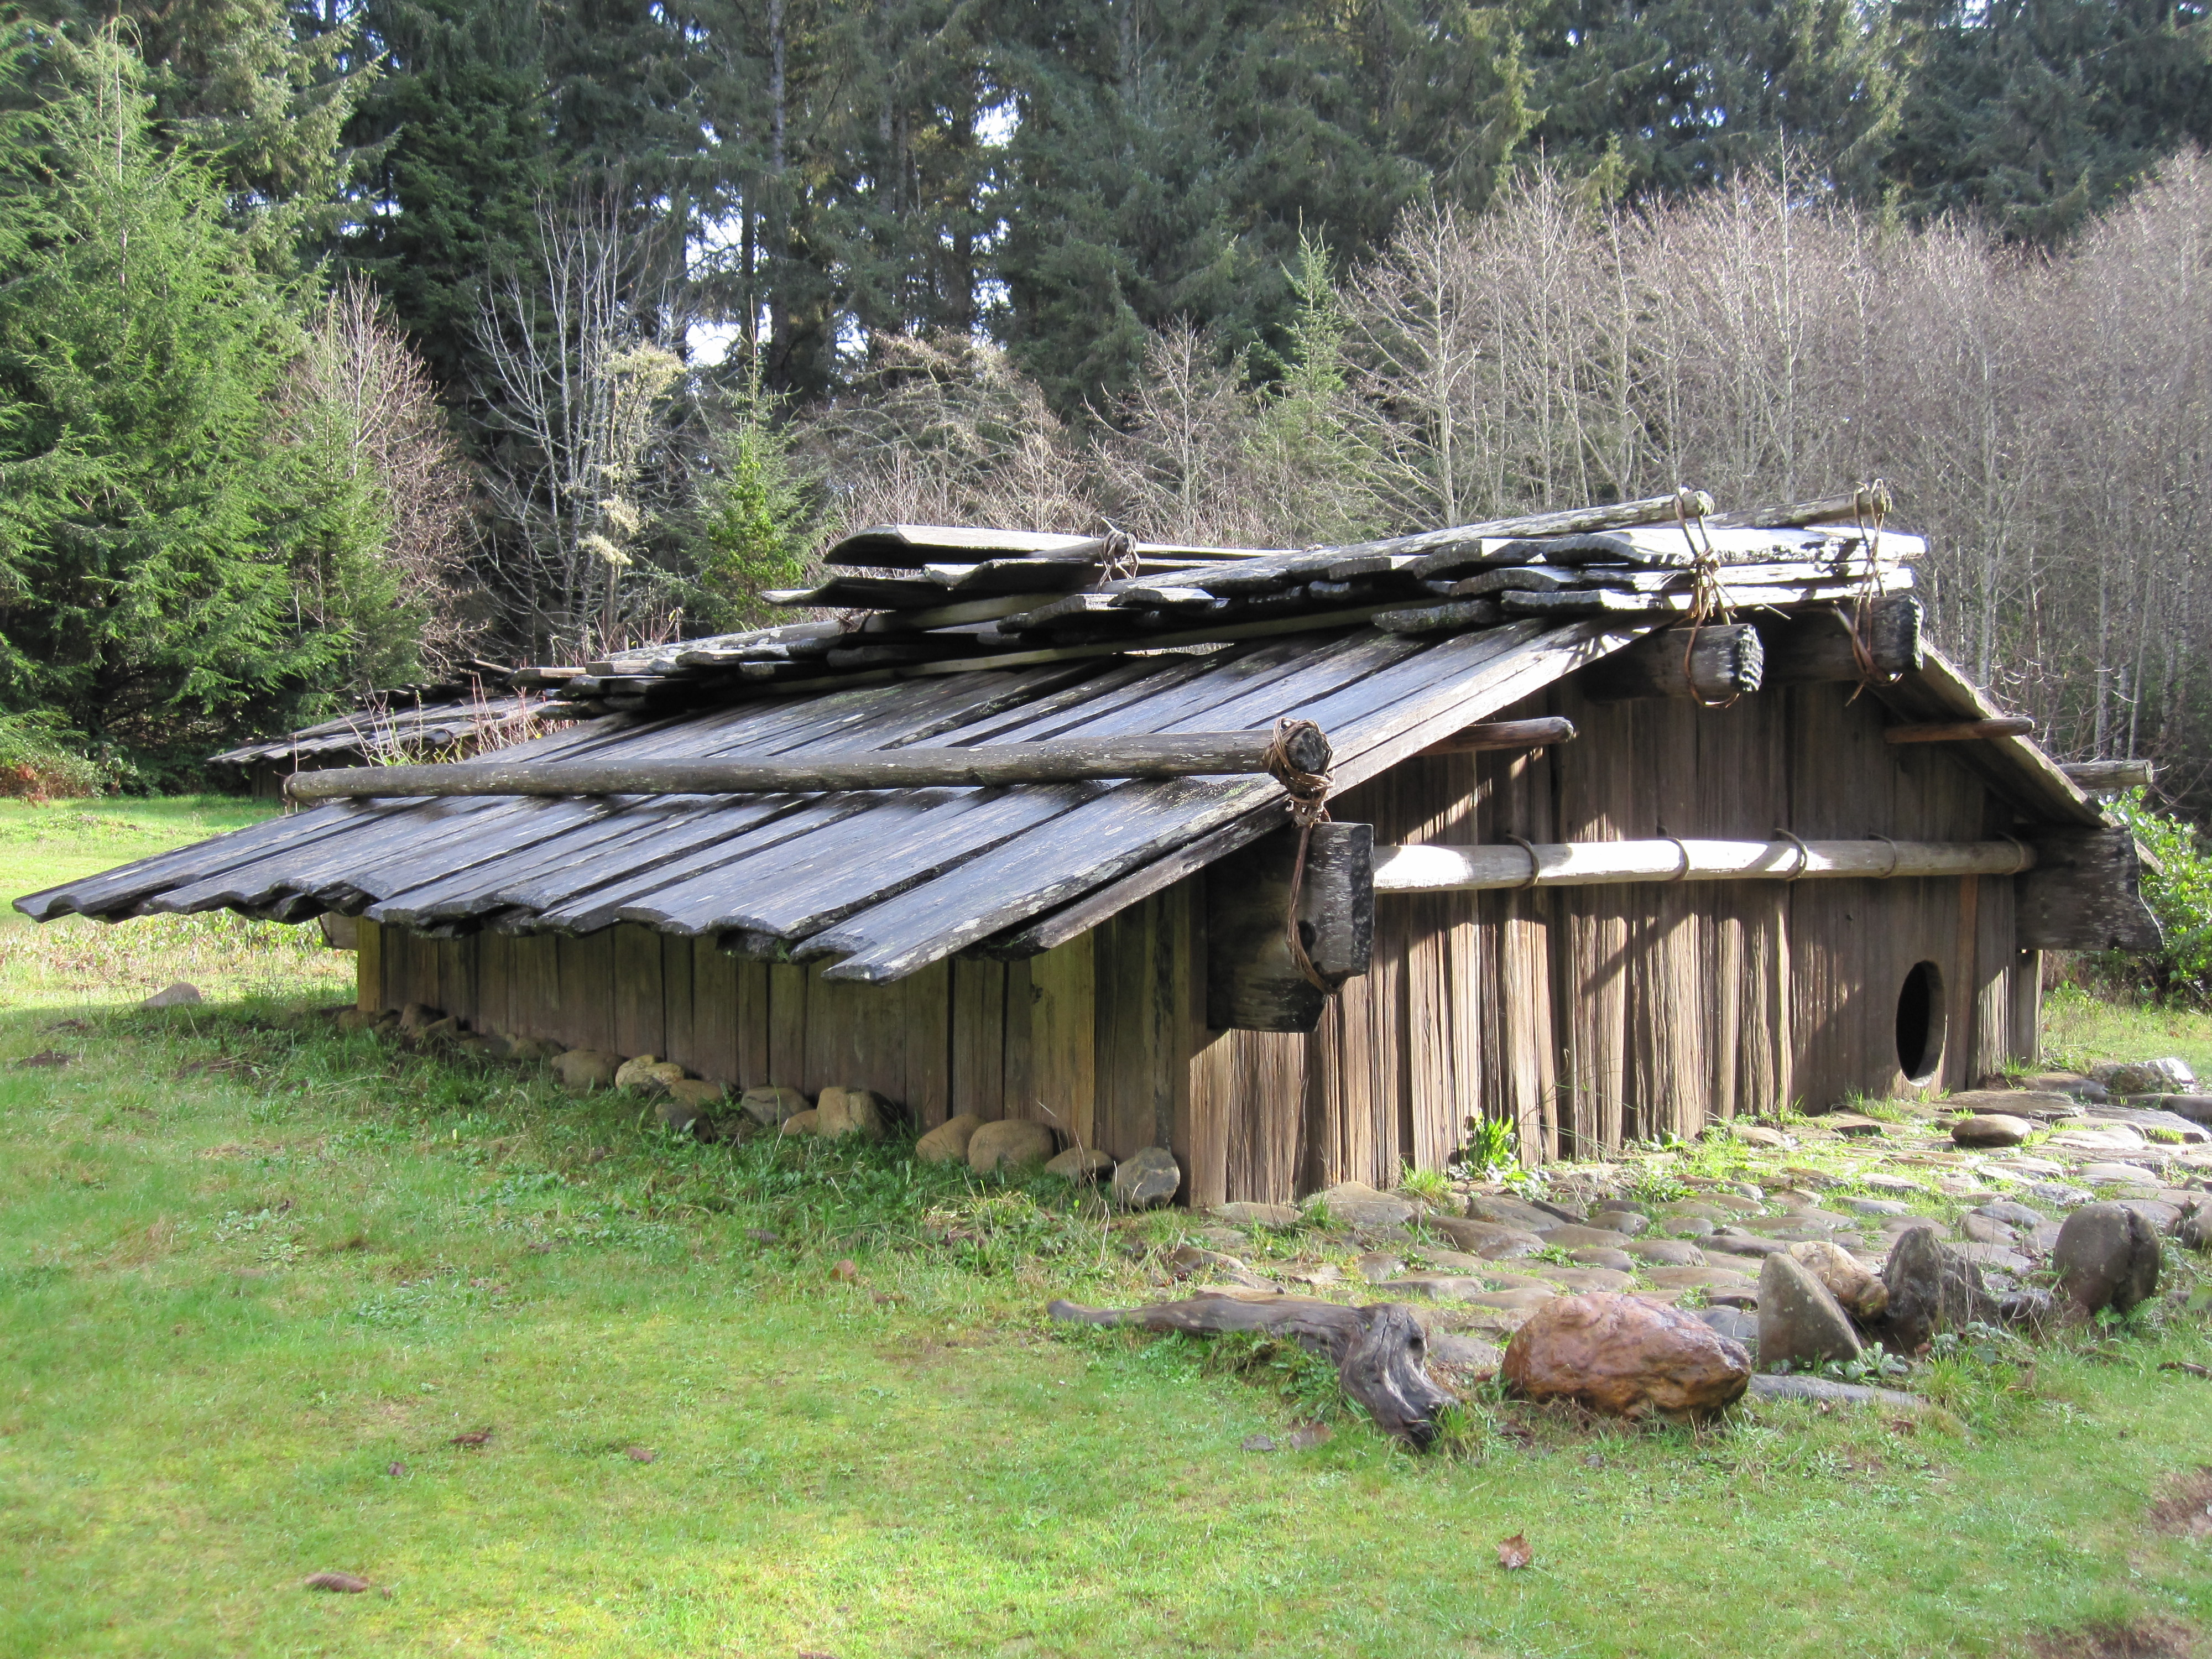 Indian Plank House http://commons.wikimedia.org/wiki/File:Yurok-Plank-house2.jpg